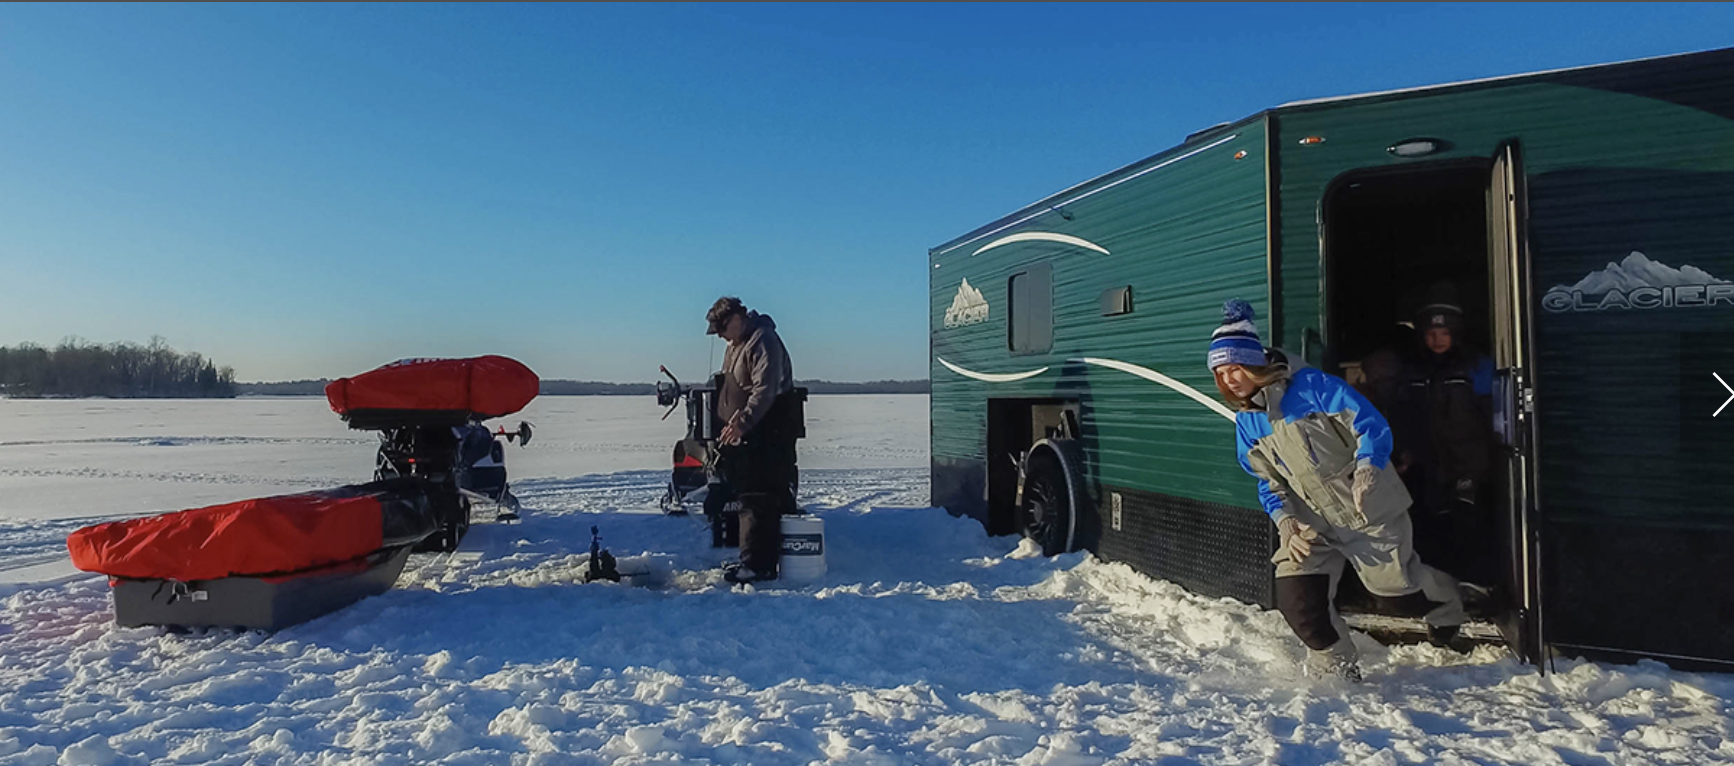 An Ice Fishing RV sits close to the ice and has roof for the whole family.